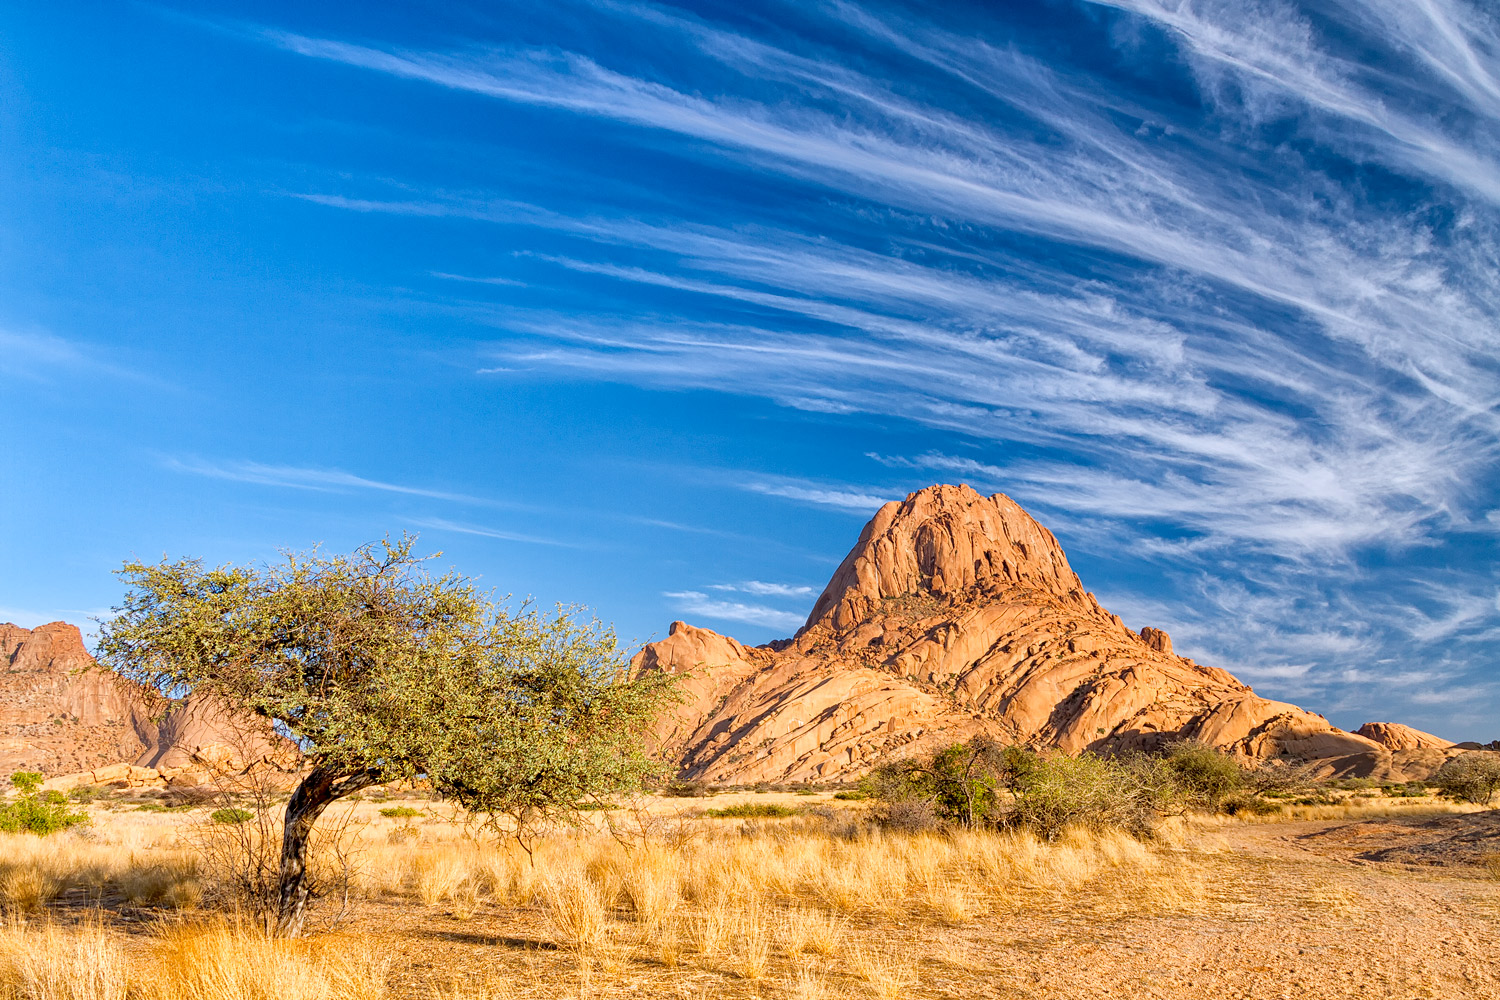 Spitzkoppe and tree - 17mm   1/40th sec   f10   ISO100